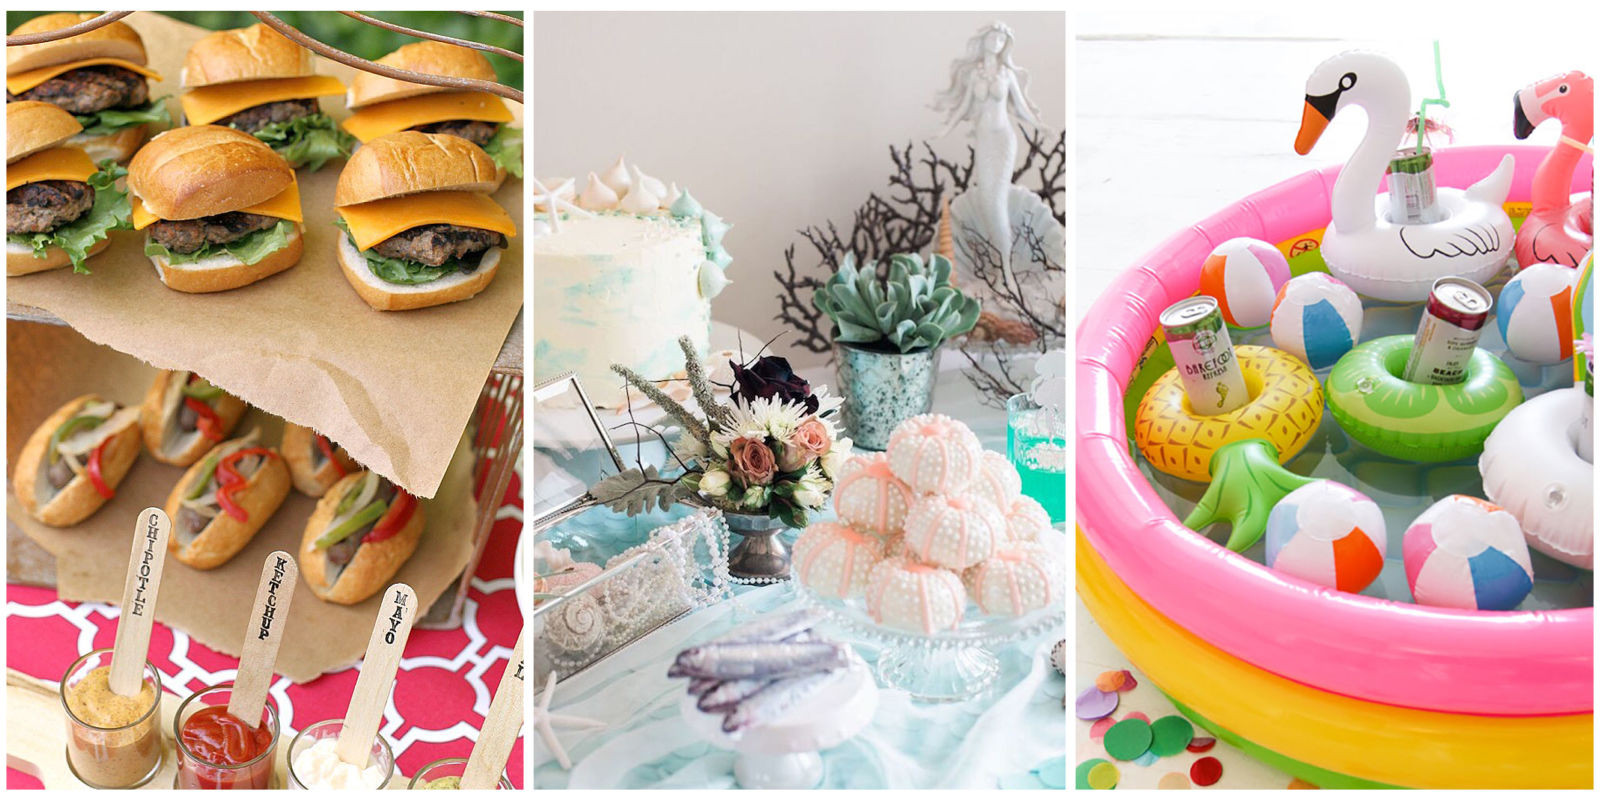 Summertime Party Food Ideas  Summer Party Ideas Summer Entertaining Decorations